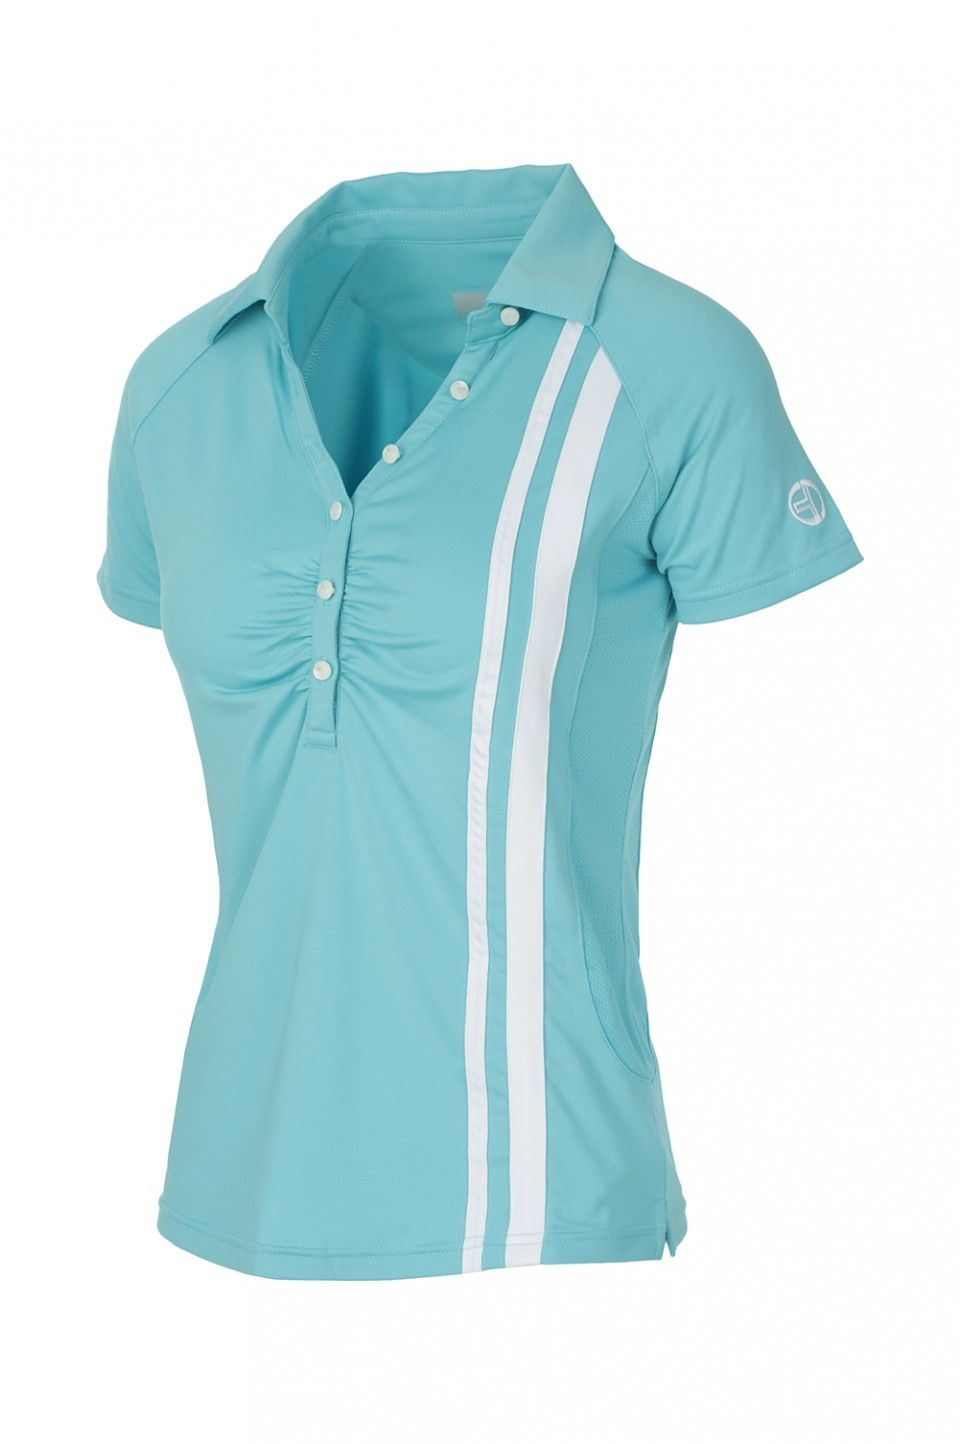 5b19fc90dfd jersey stretch tennis polo with sides that allow perspiration Classic  contrasting Tacchini stripe applied vertically on